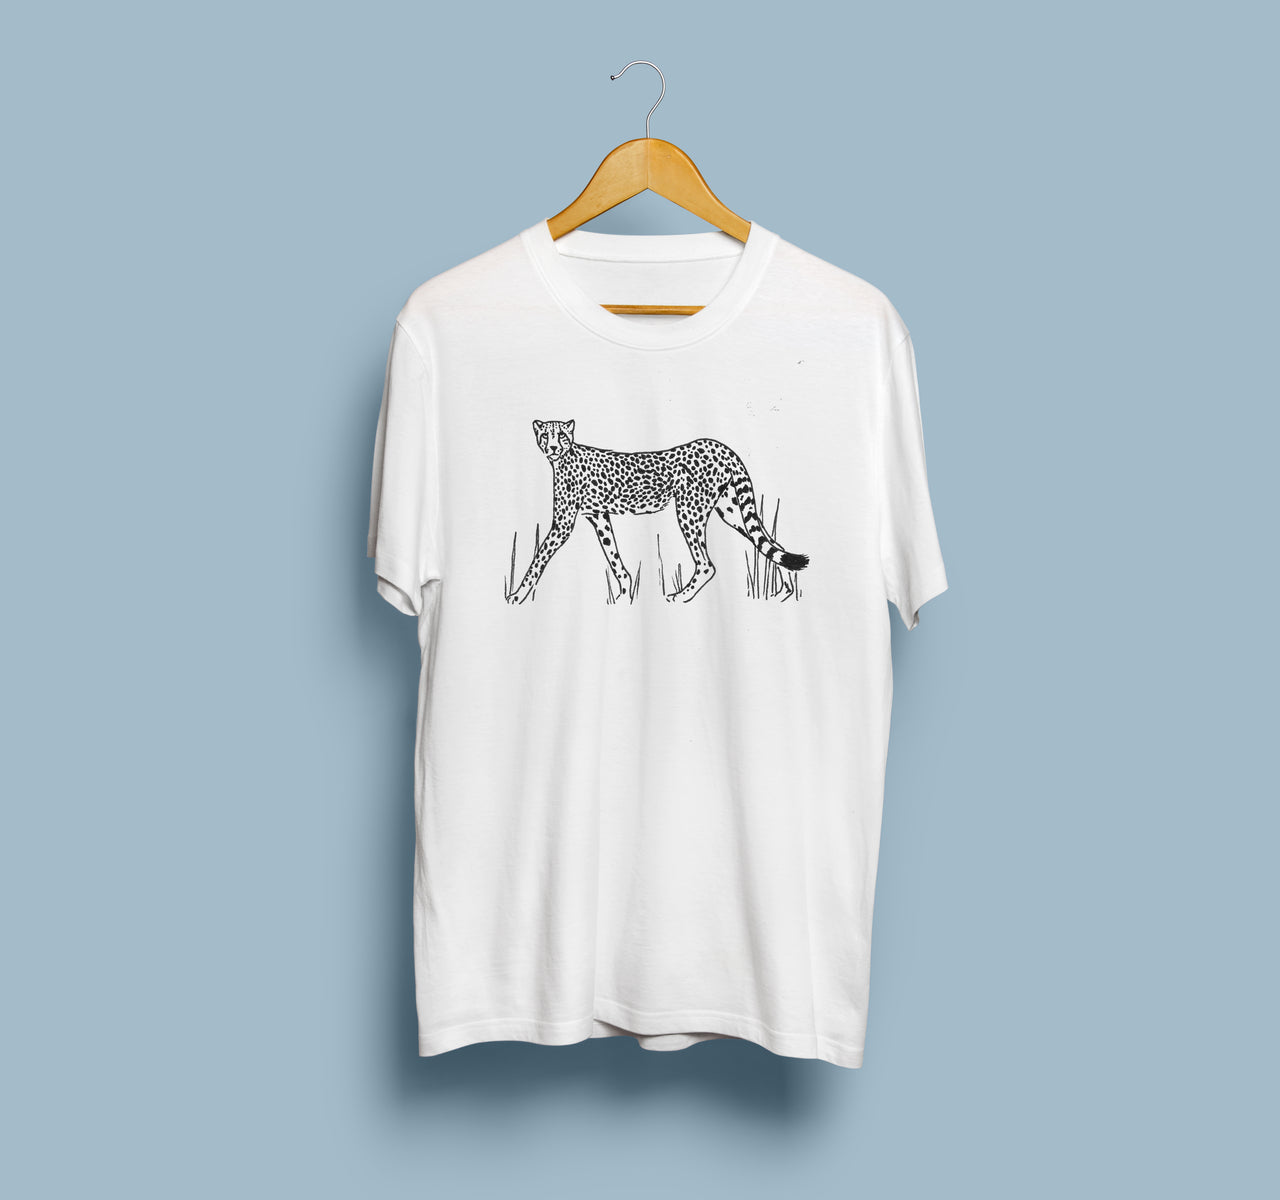 Cheetah Tee by Tamar Bar | White Unisex T-Shirt